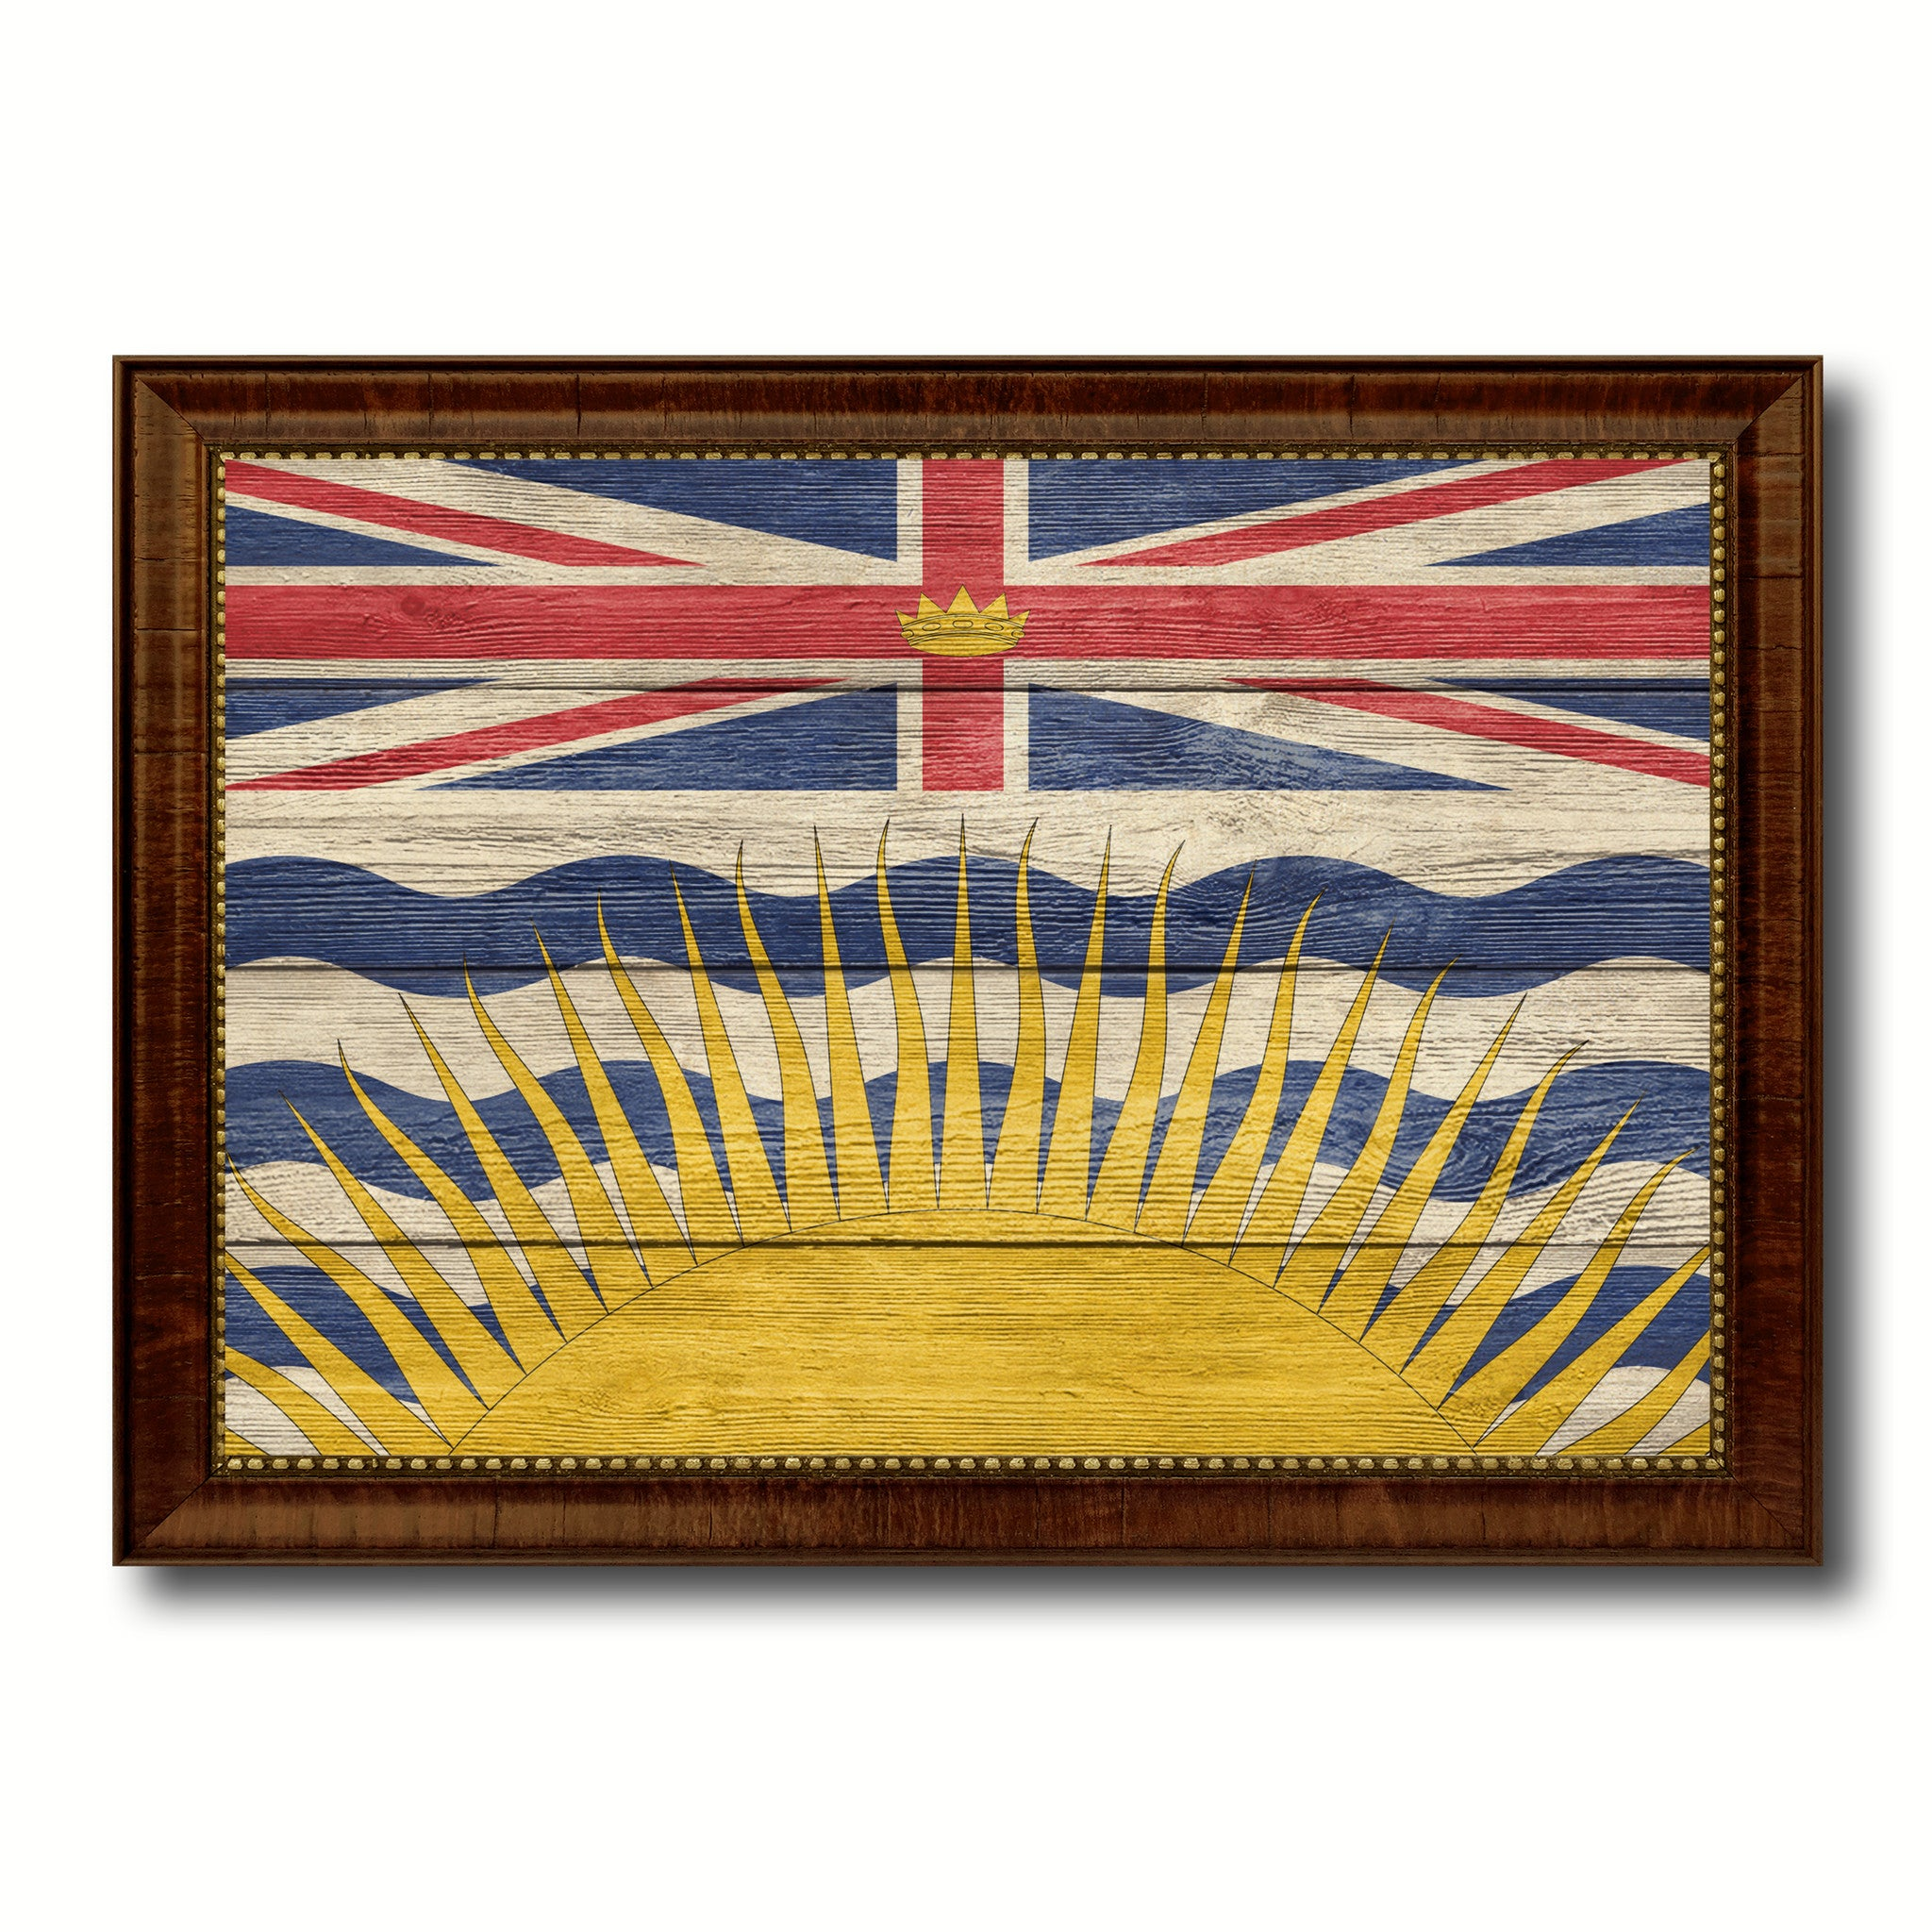 British Columbia Province City Canada Country Texture Flag Canvas Print Brown Picture Frame